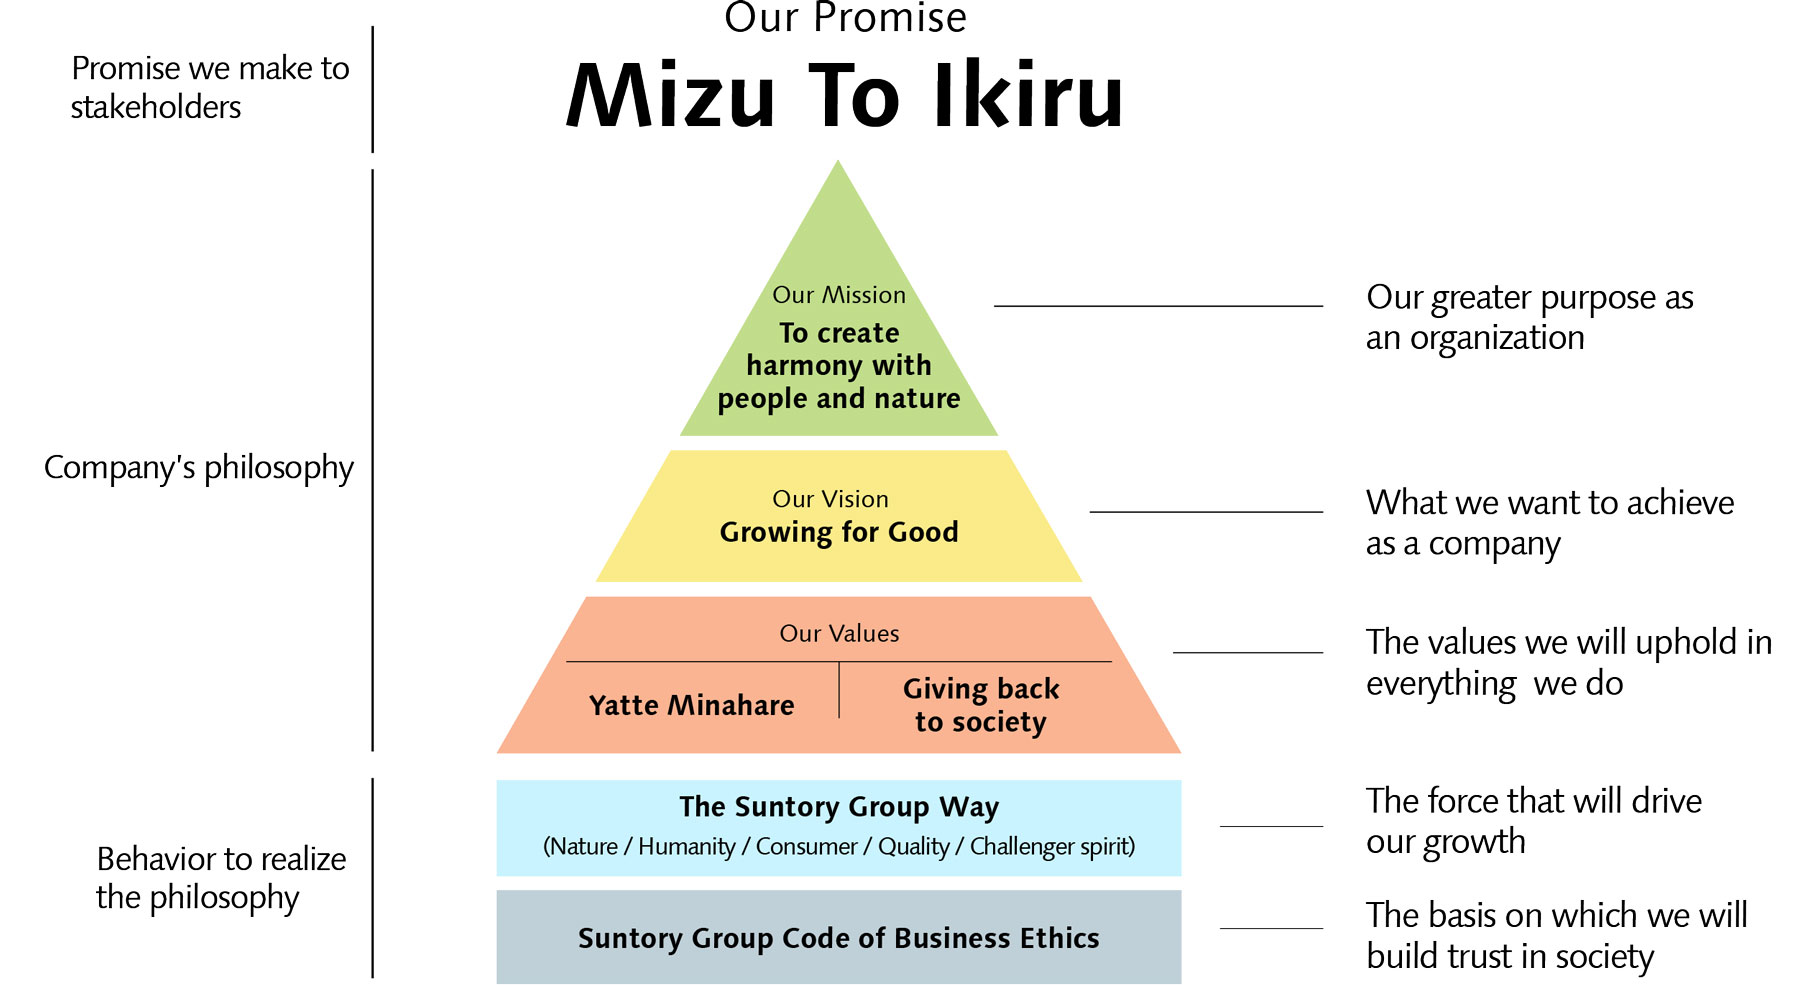 mizu to ikiru - our promises